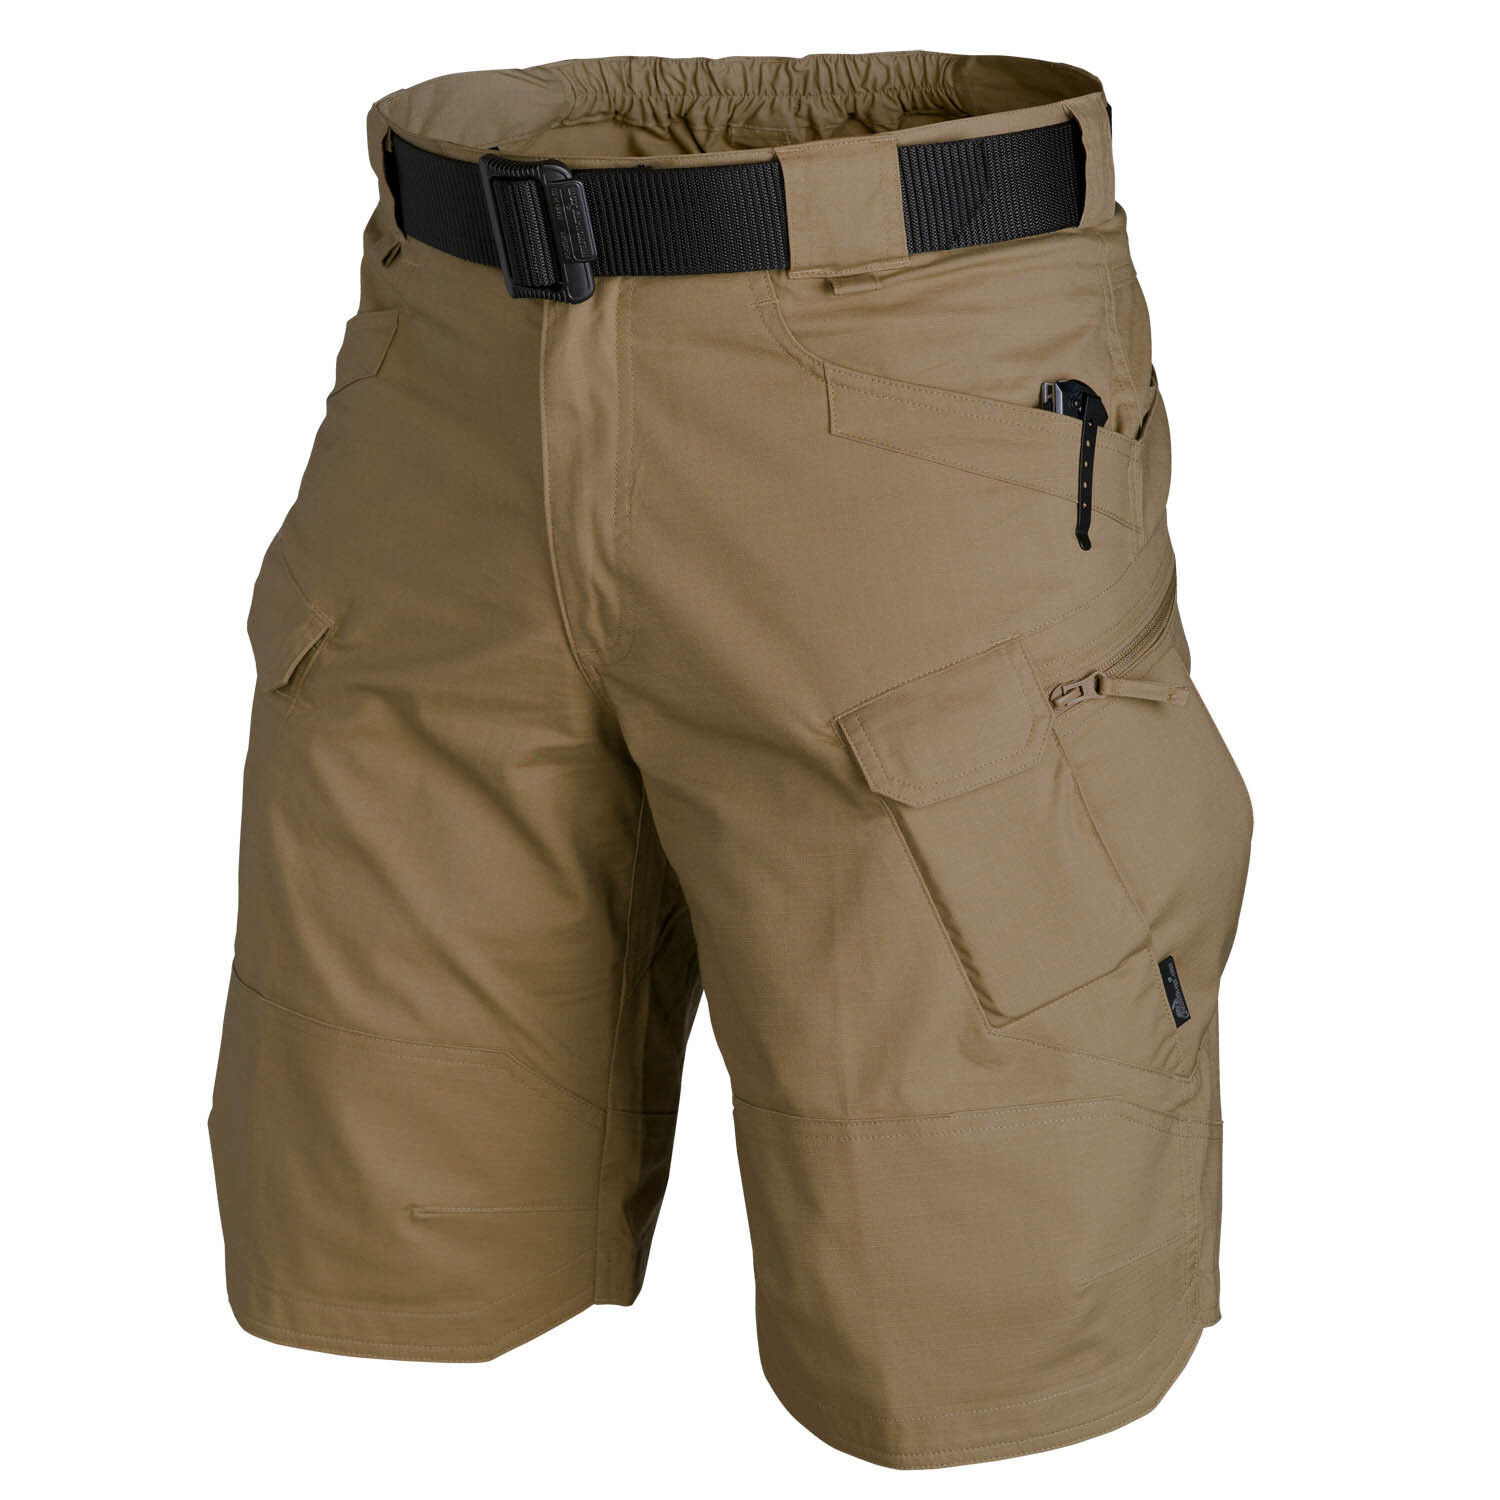 HELIKON TEX UTP URBAN TACTICAL kurz CARGO SHORTS Outdoor Hose kurz TACTICAL coyote L Large fa1c1d